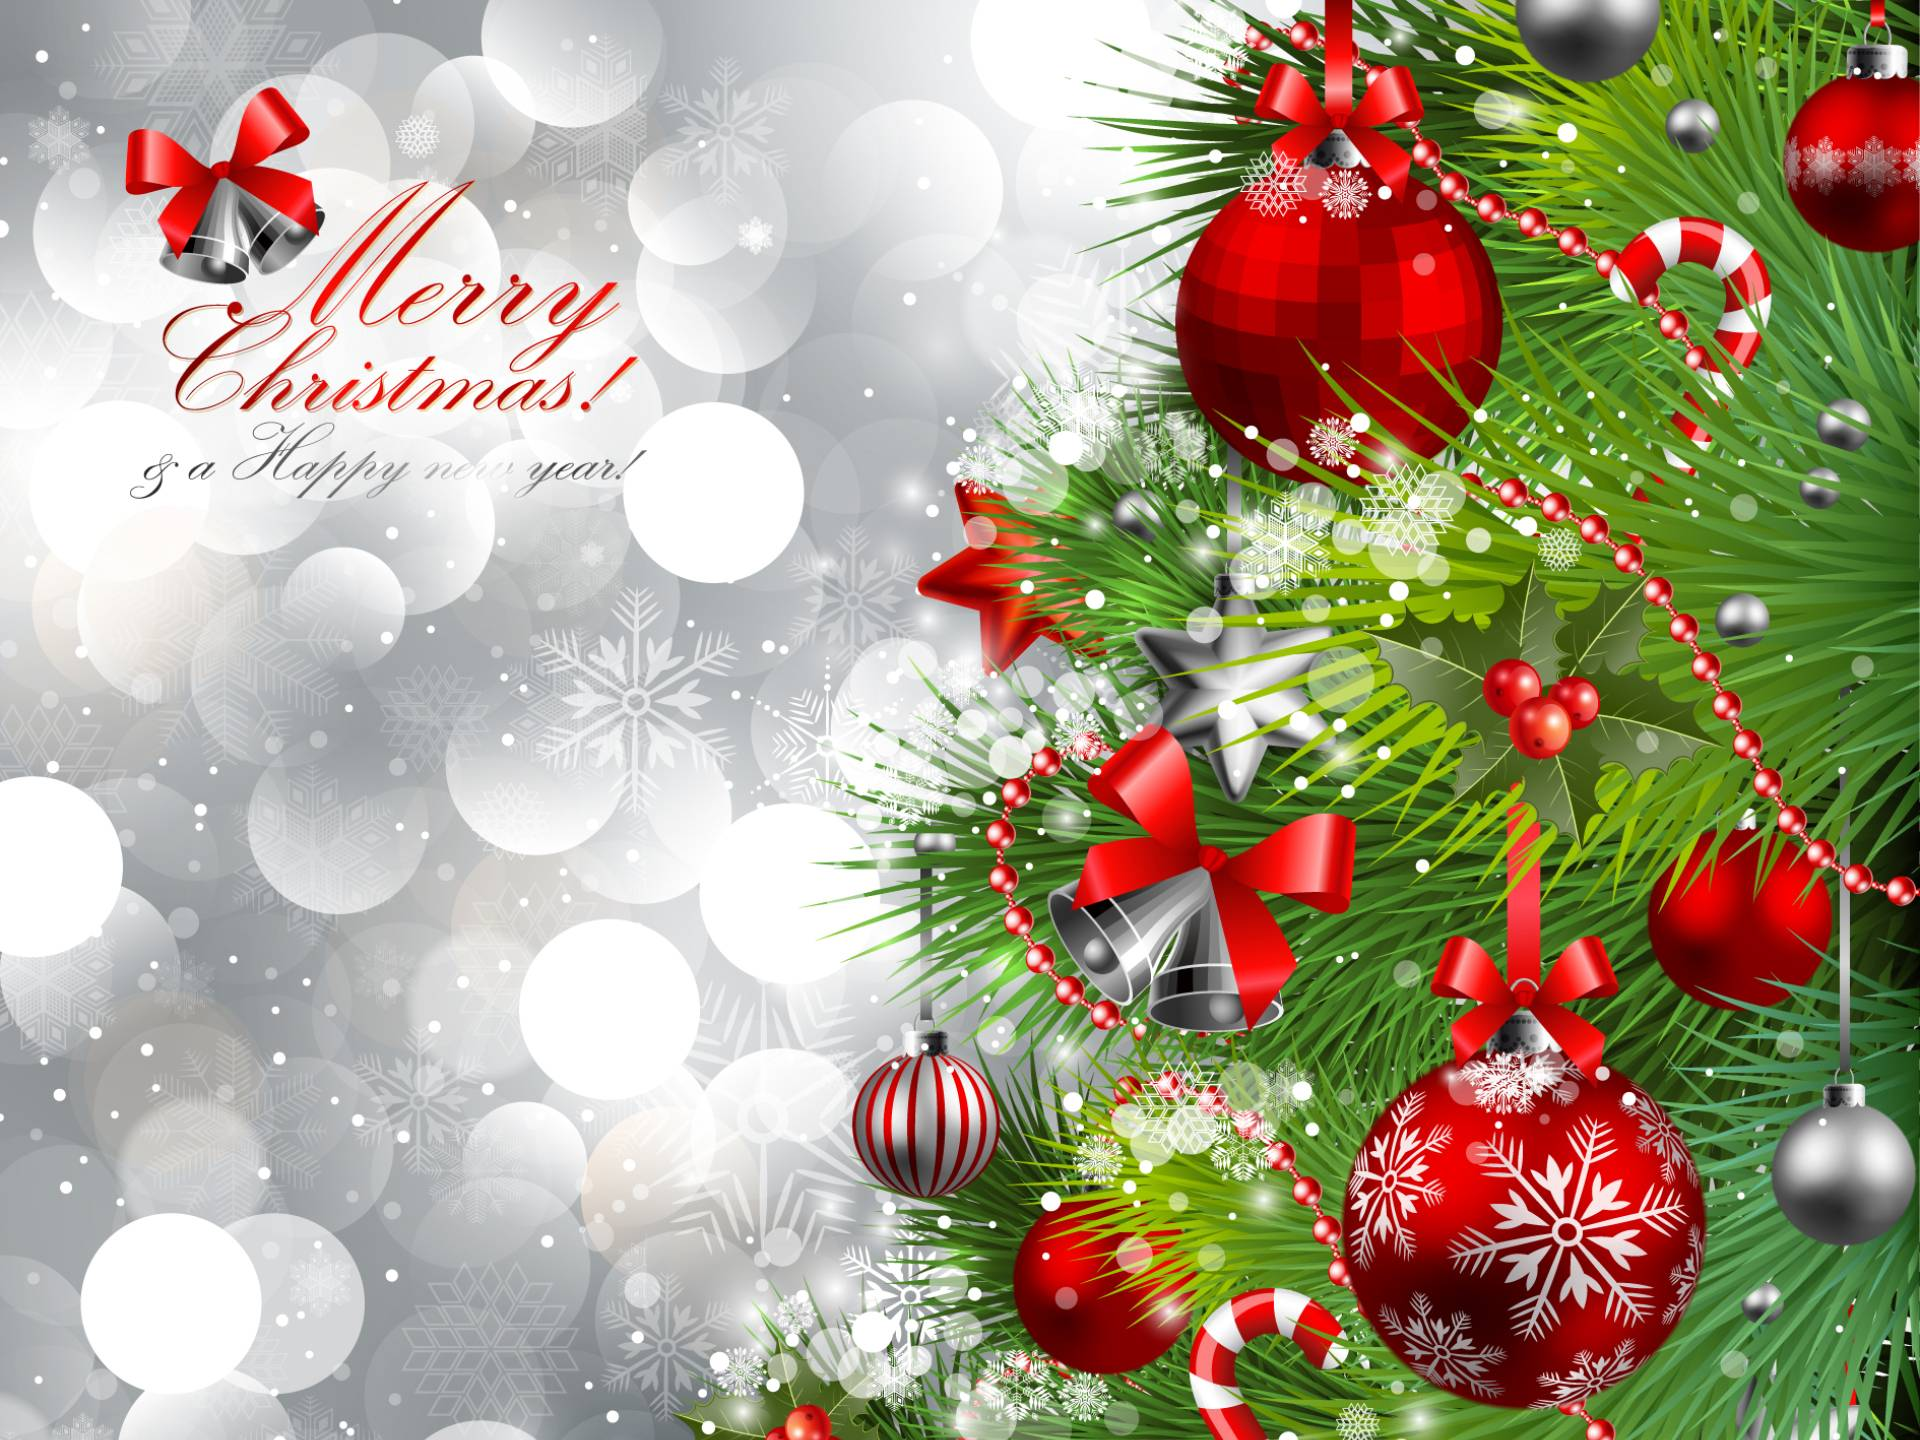 Wallpapers Of Merry Christmas